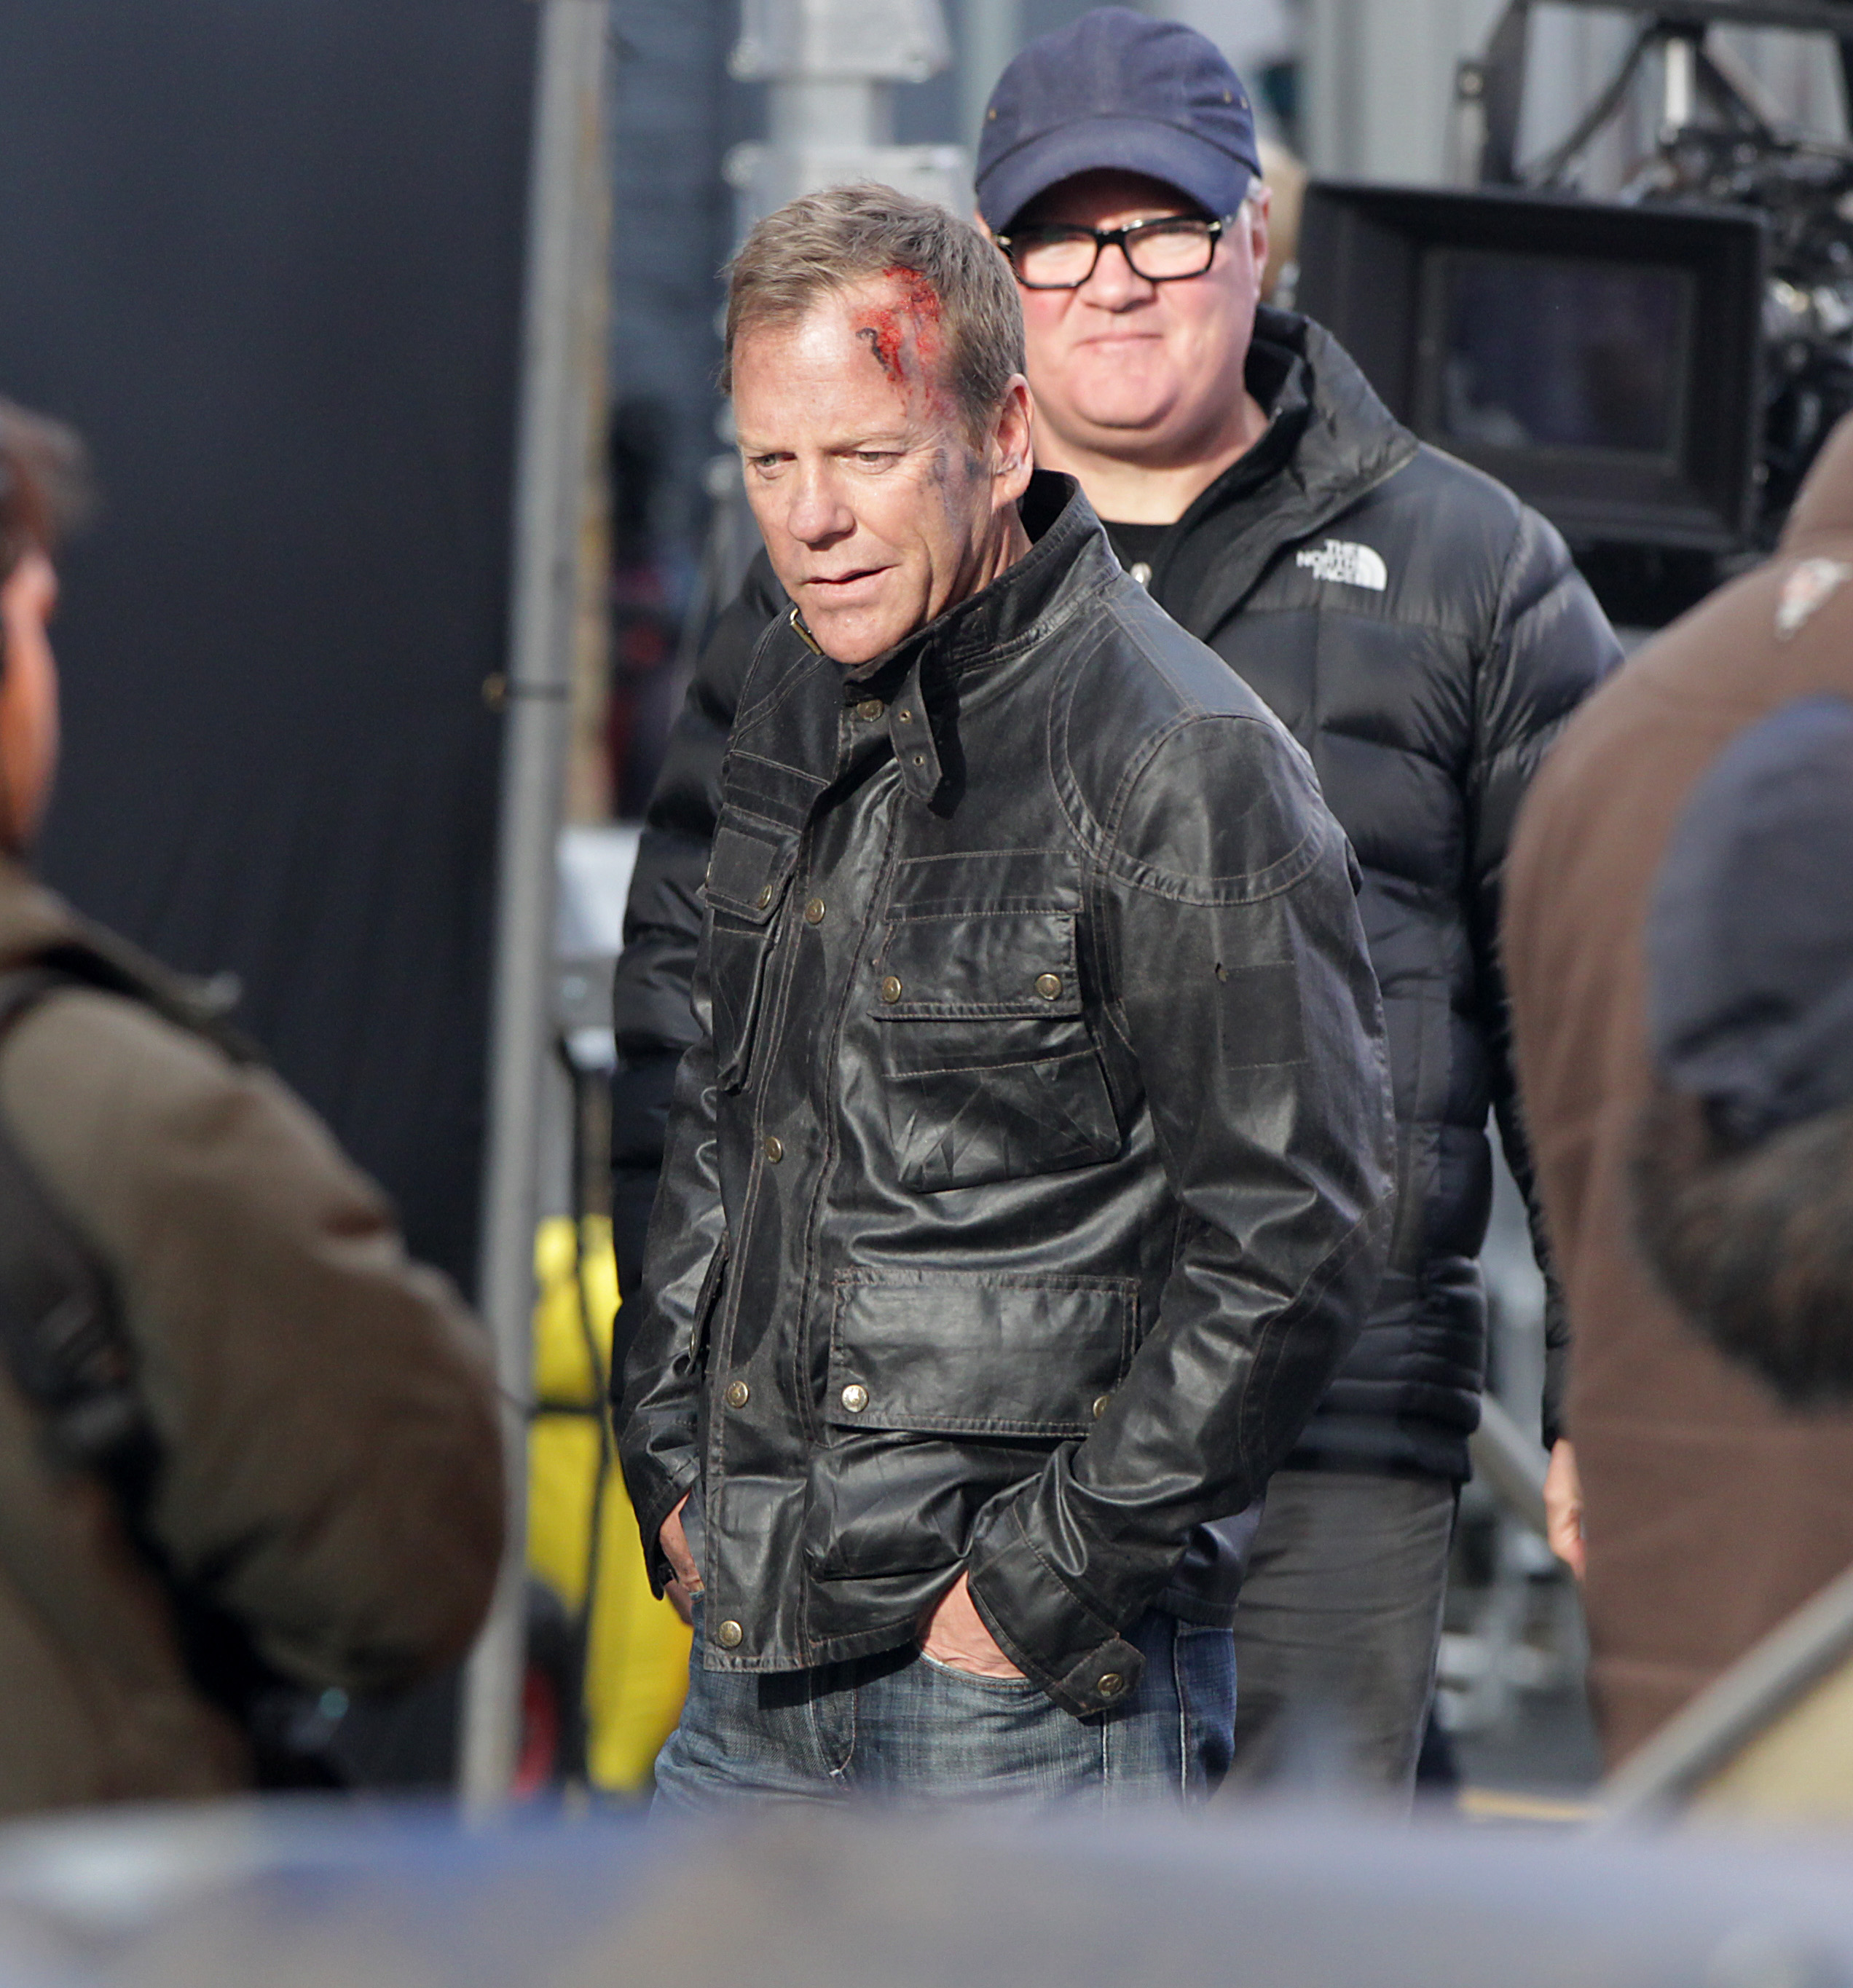 Kiefer Sutherland films scenes for 24: Live Another Day in London on Jan. 22, 2014.